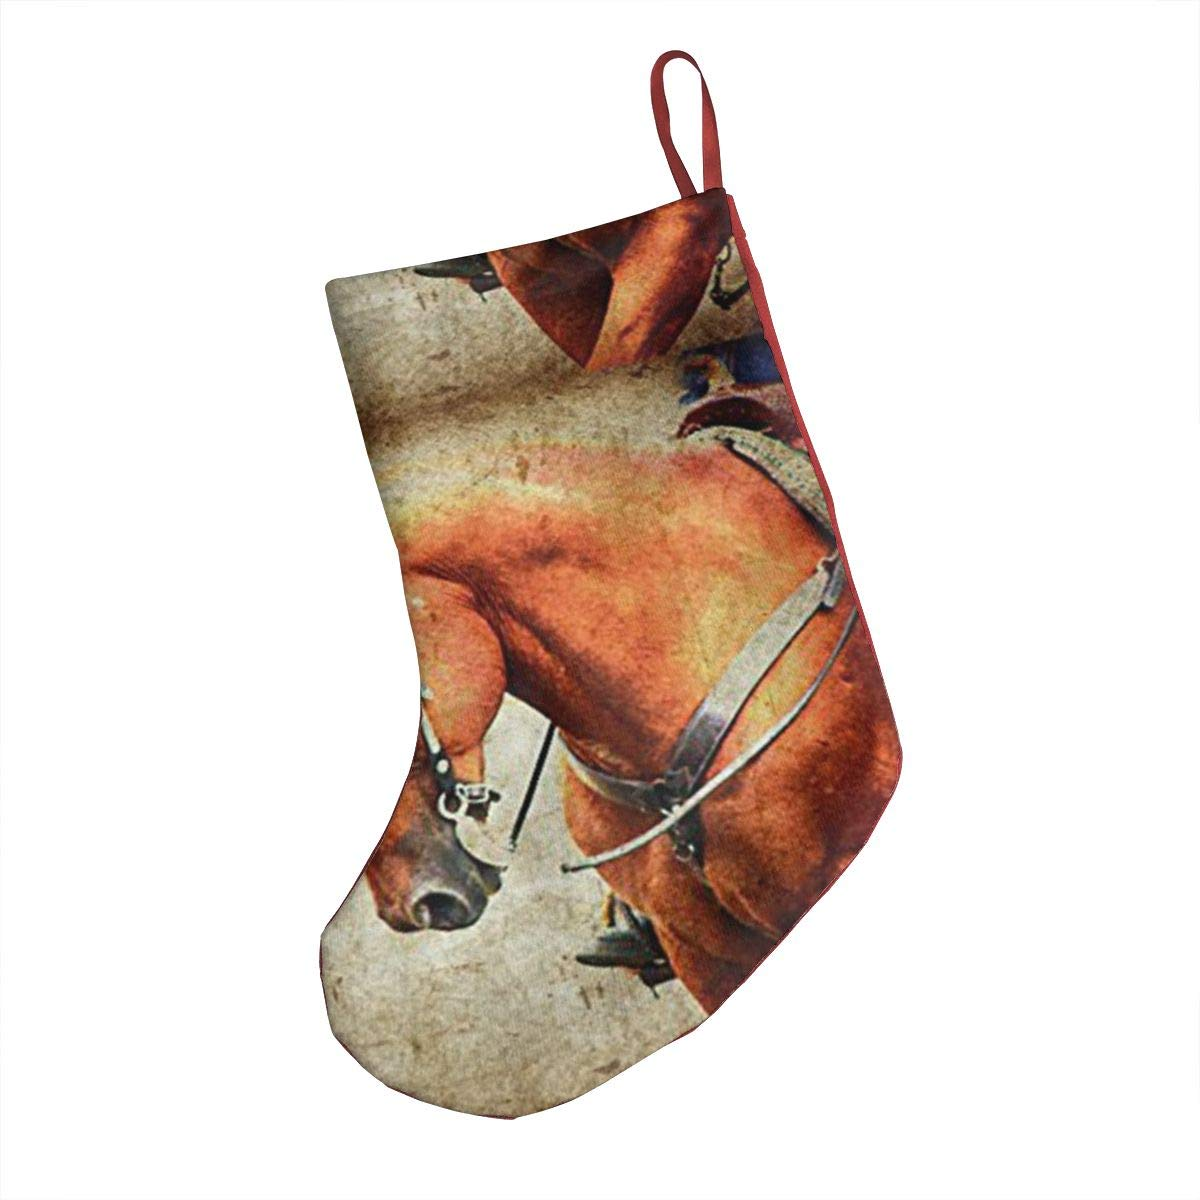 Western Christmas Stockings Personalized.Amazon Com Personalized Christmas Stocking Western Horse